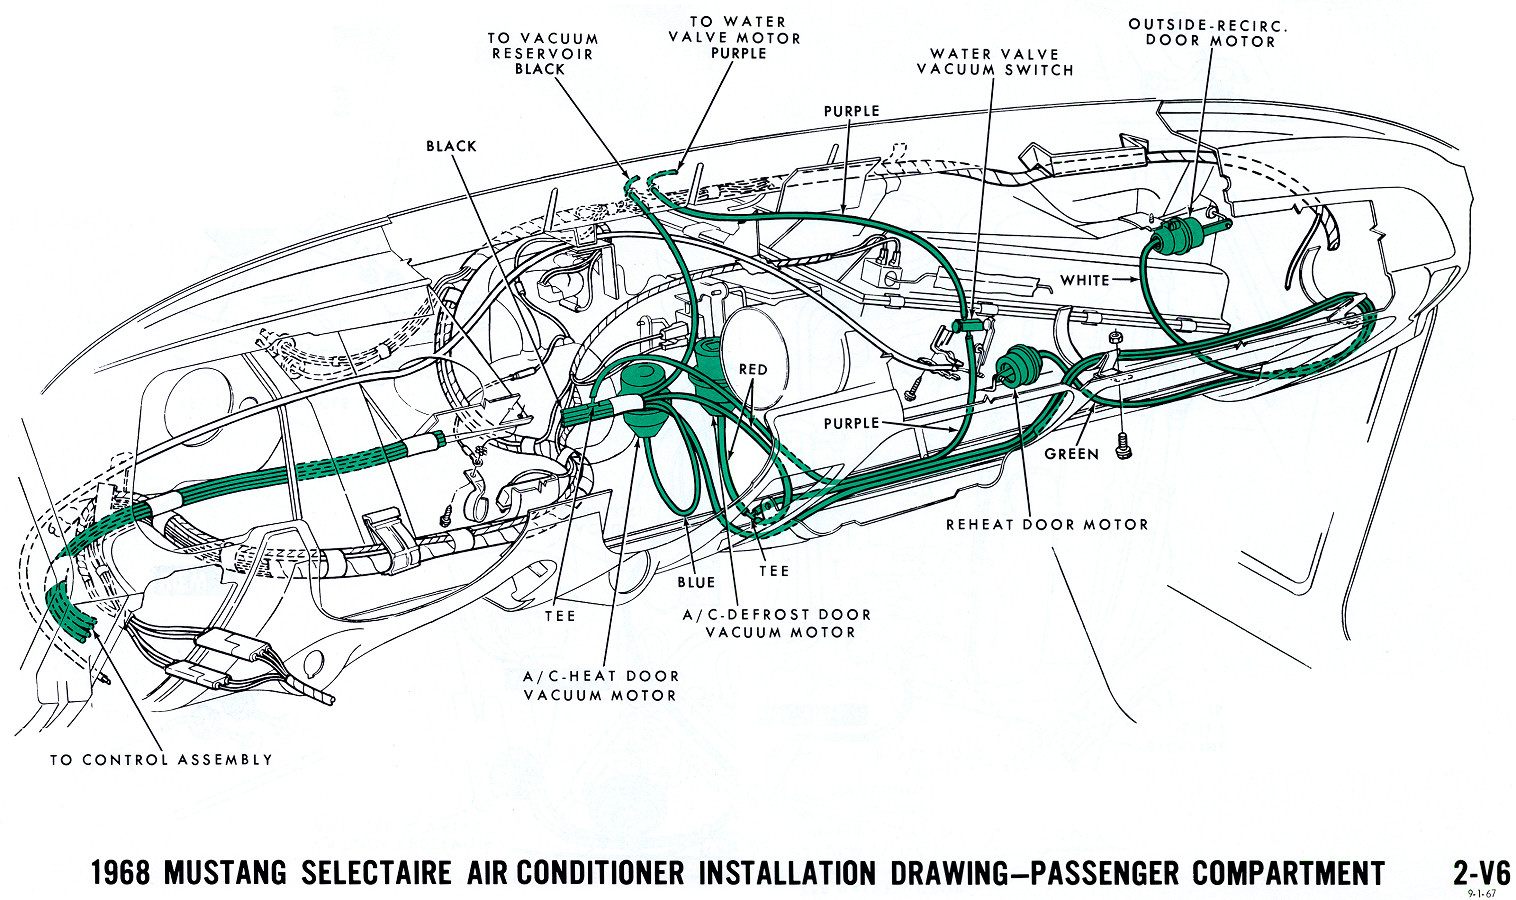 1968 mustang vacuum diagram air conditioning interior 1968 mustang wiring diagrams and vacuum schematics average joe 1968 corvette wiring diagram at readyjetset.co